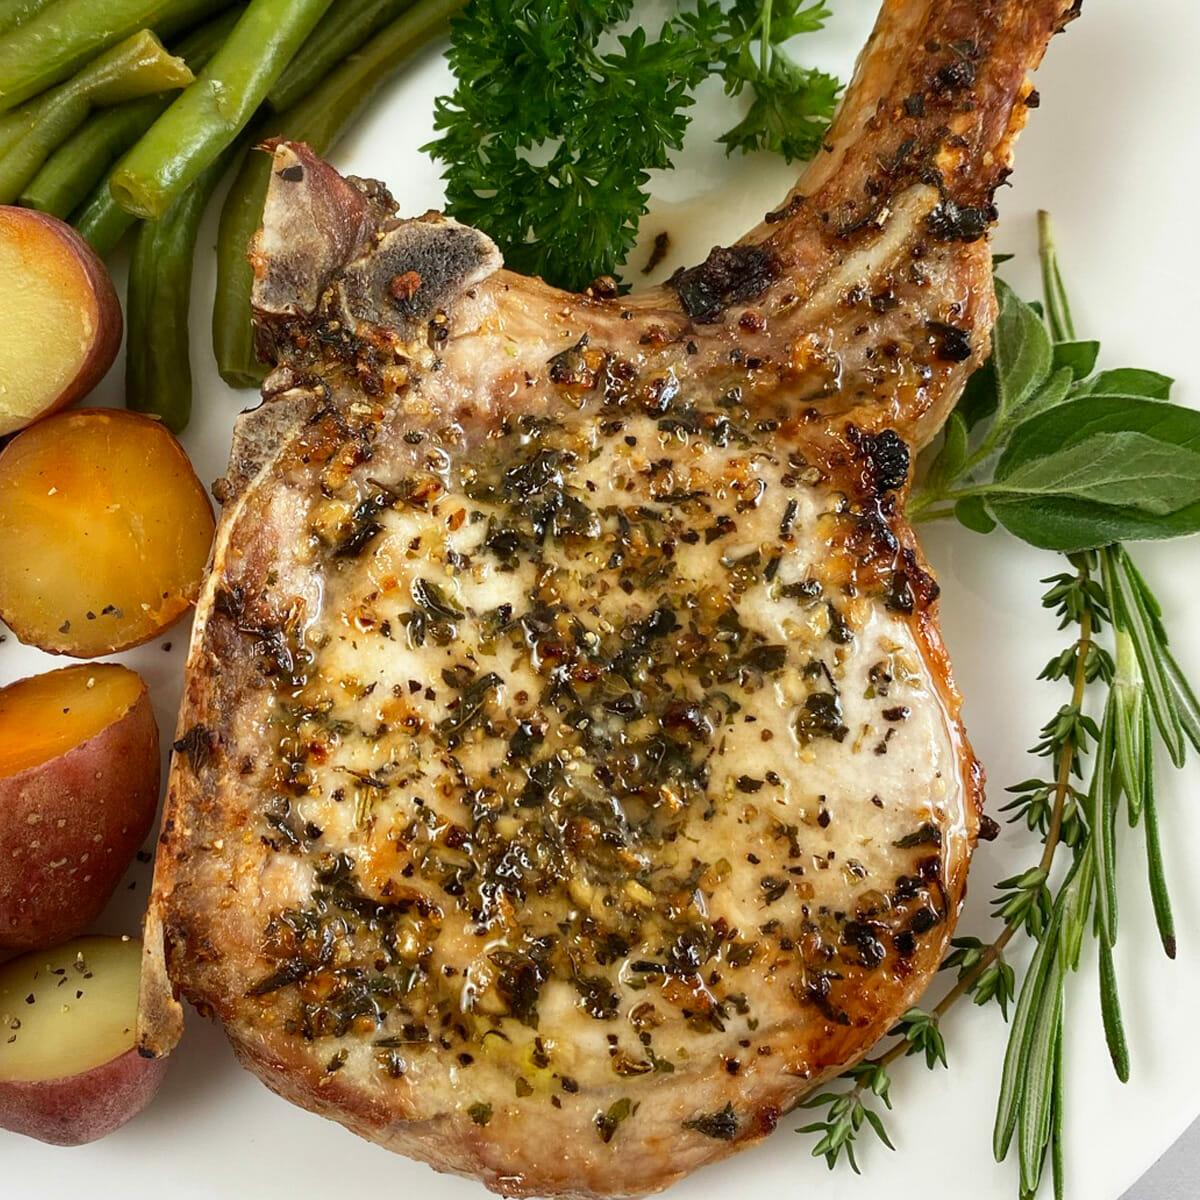 Recipe for thick and juicy, garlic and herb air fryer pork chops.